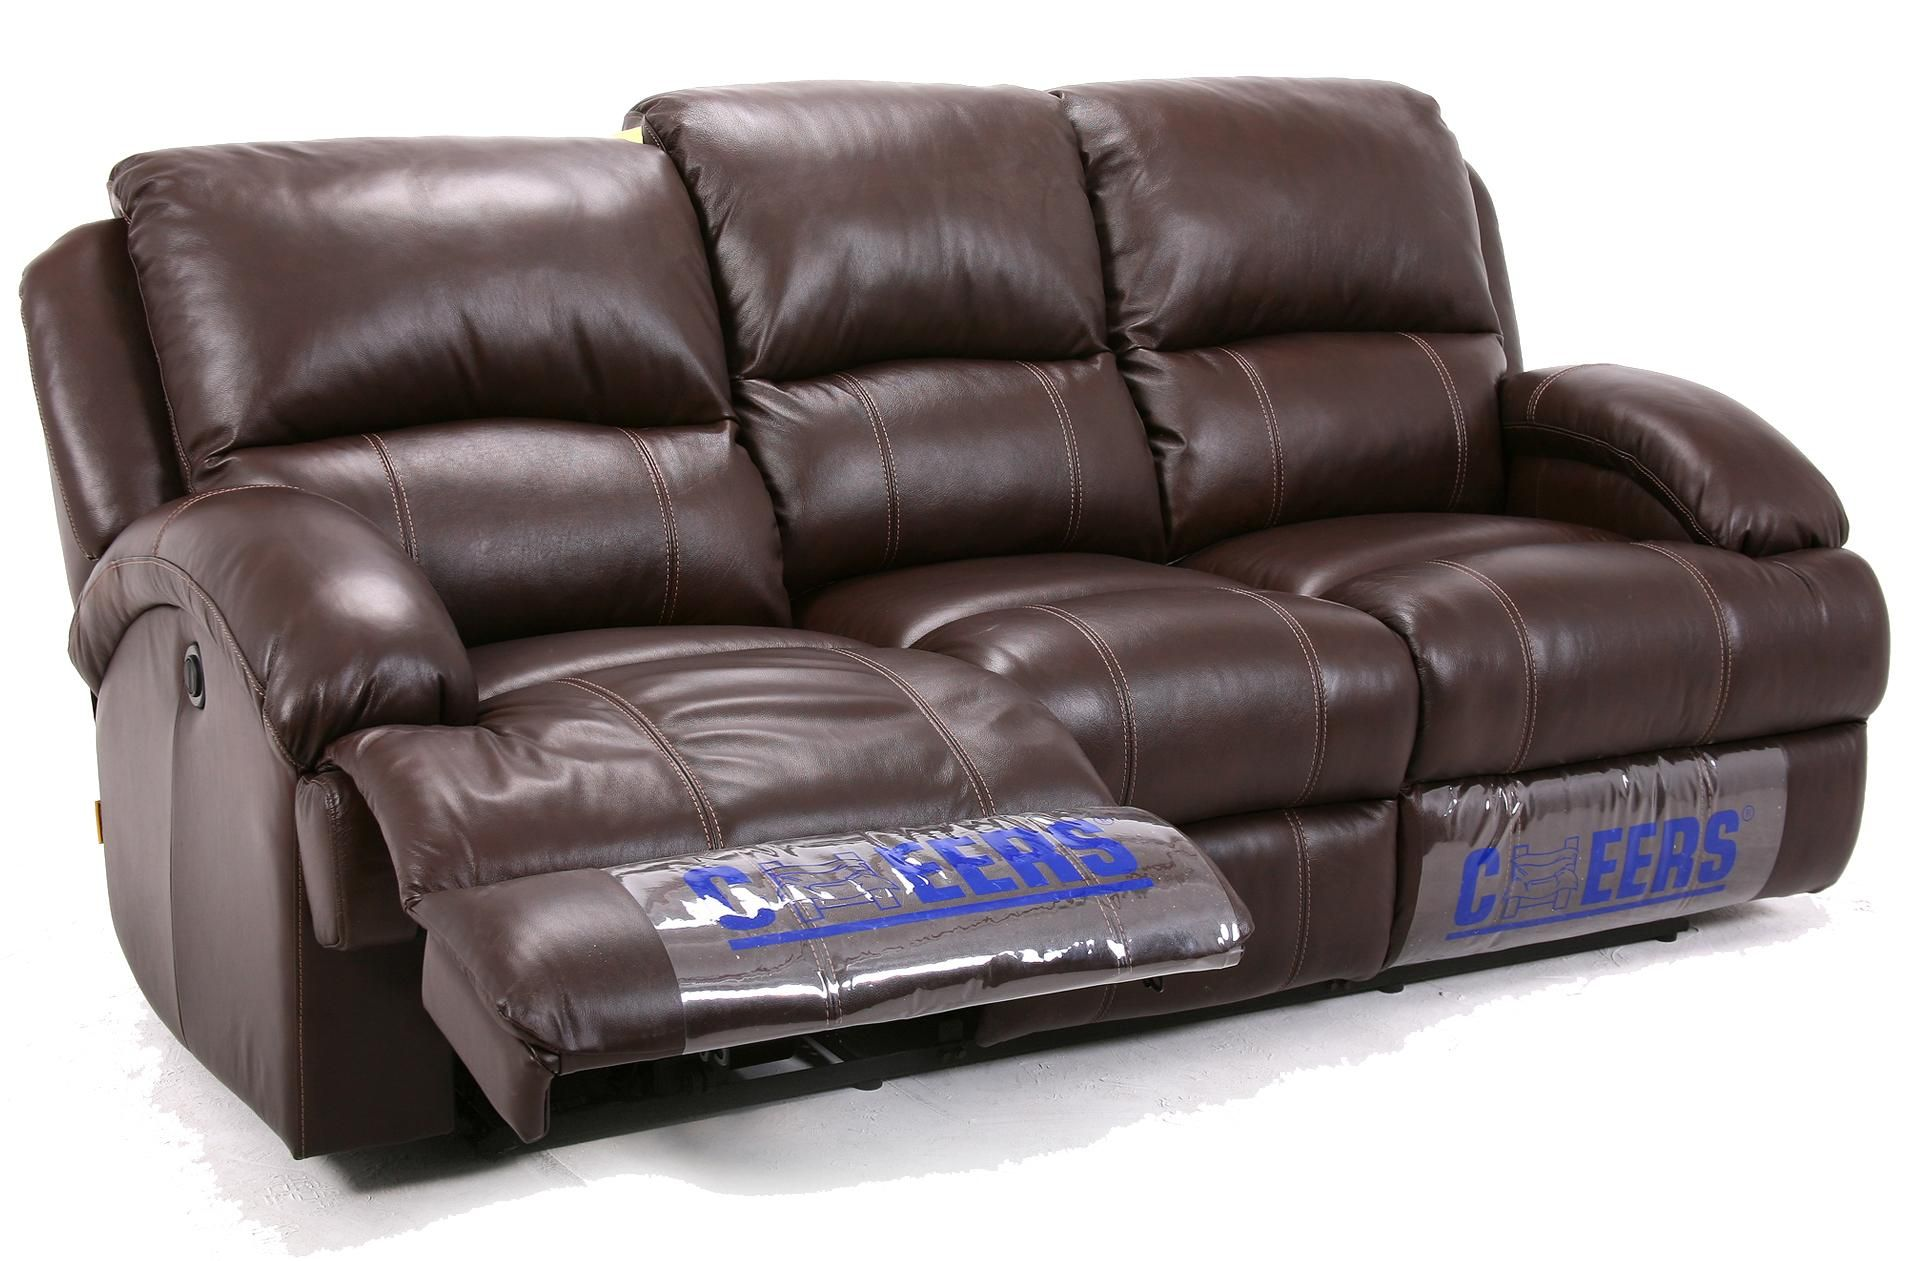 Uxw8626m Power Reclining Sofa By Cheers Sofa Hudsons Modern